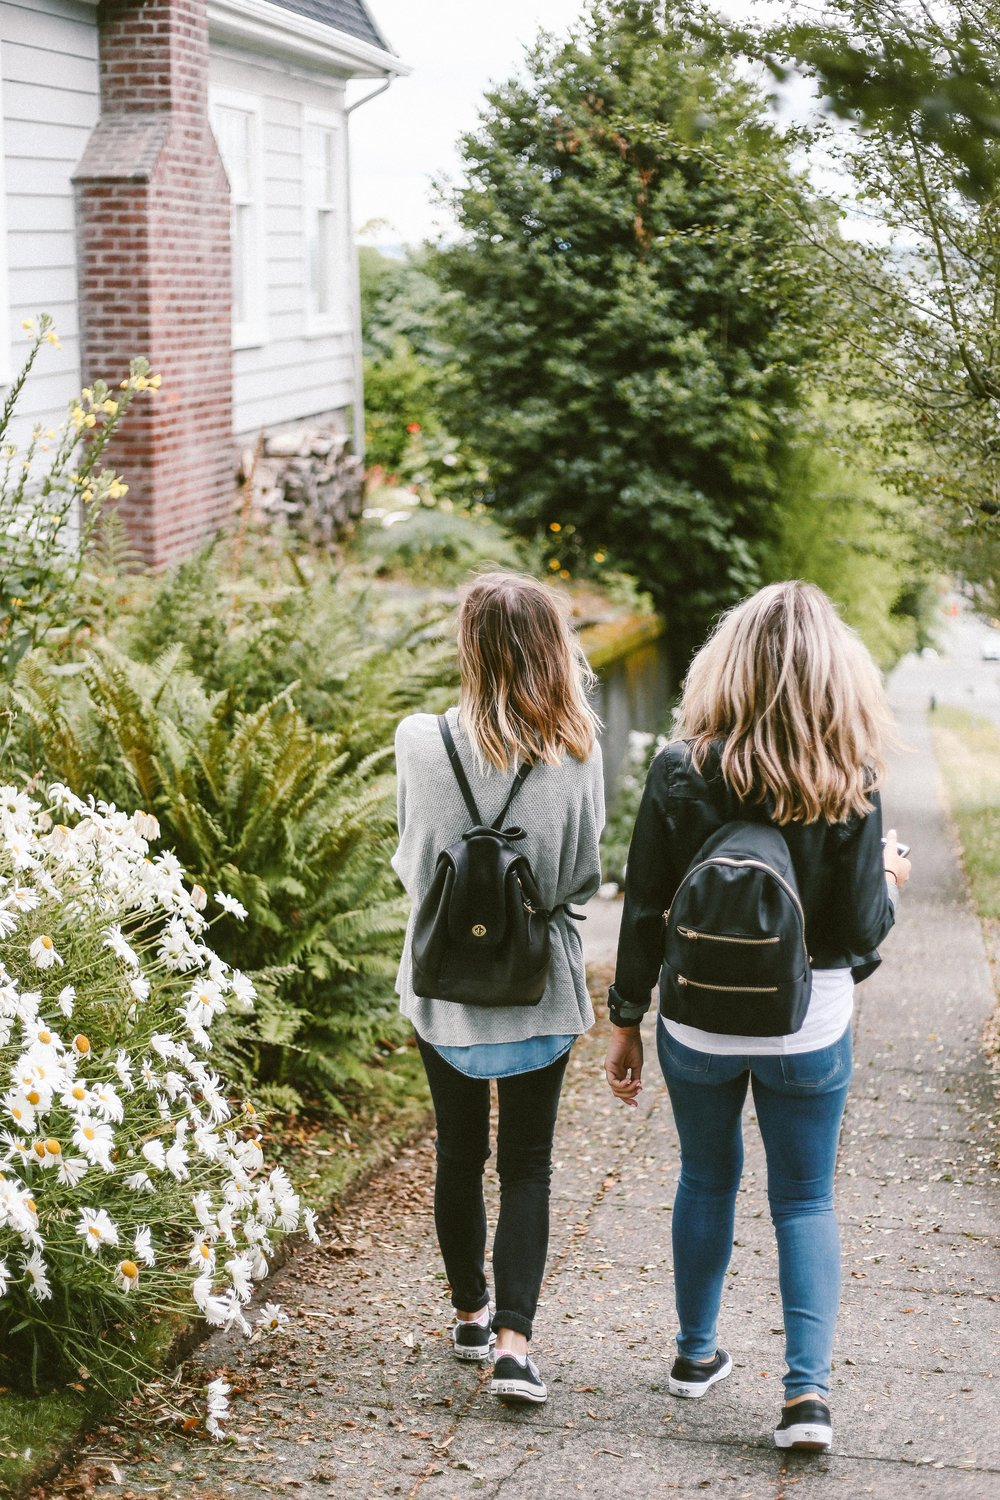 unsplash girls backpacks walking away.jpg